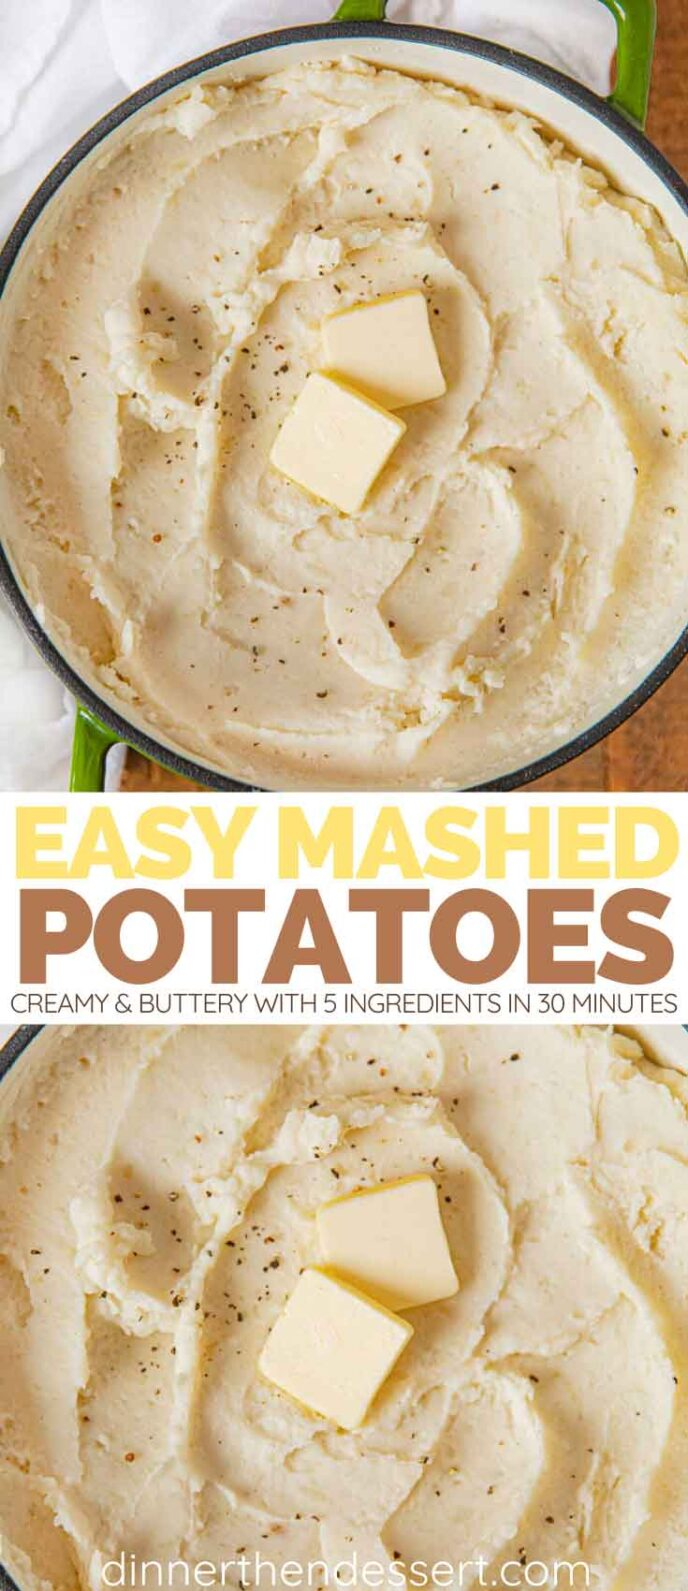 Easy Mashed Potatoes collage